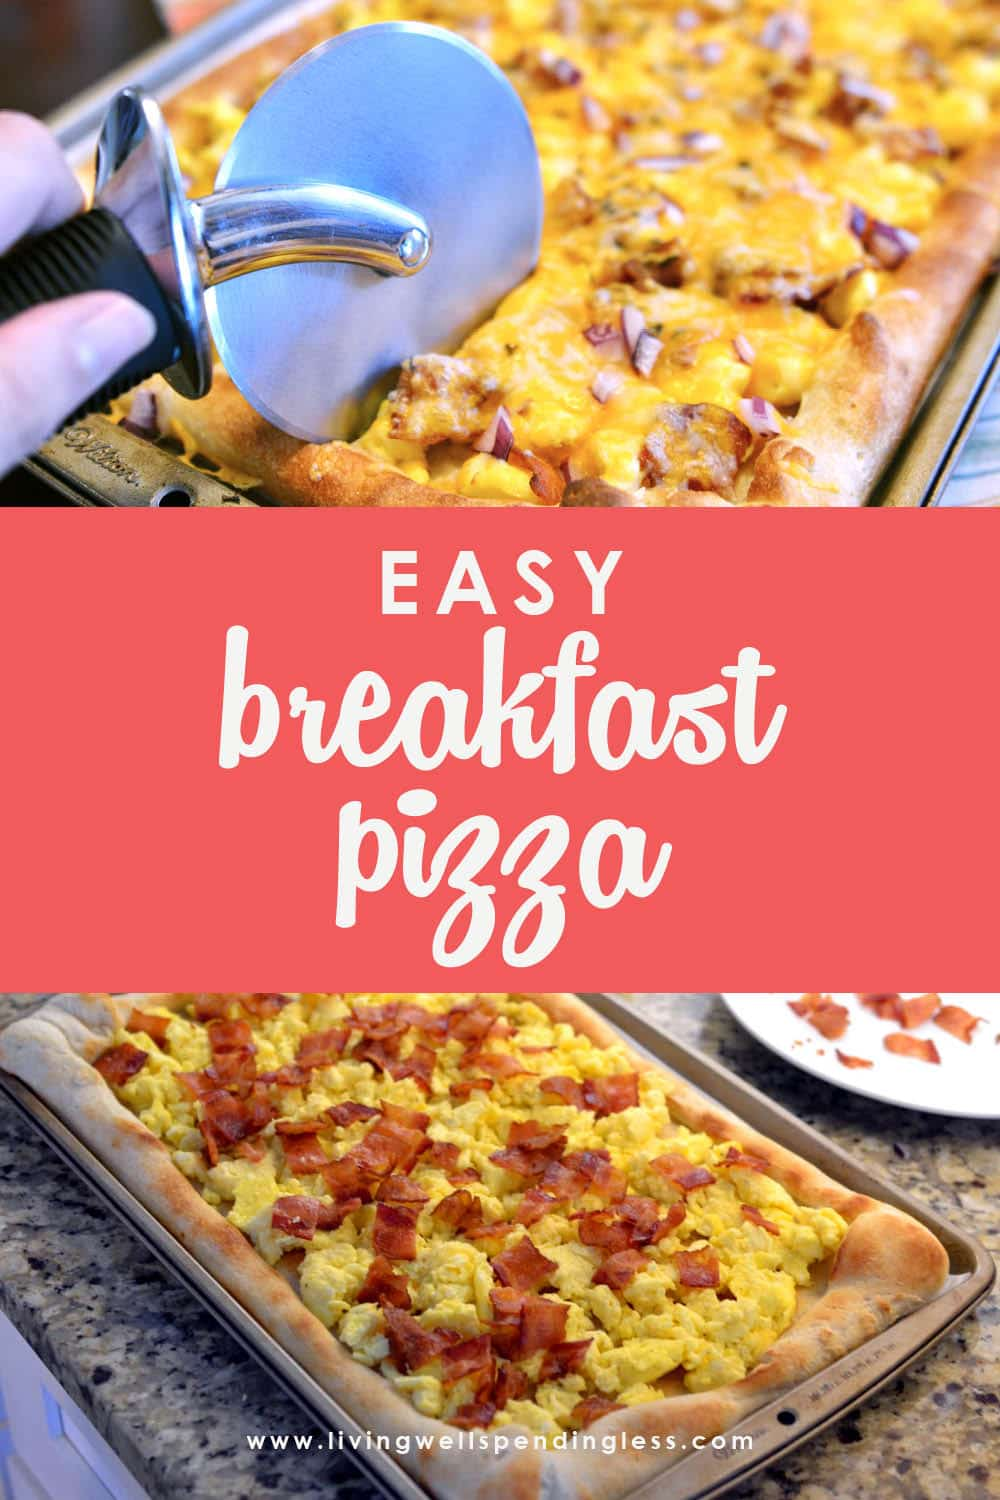 Ready for a fun way to mix up the most important meal of the day? This easy breakfast pizza recipe combines all your favorites into one tasty dish! #healthybreakfast #pizza #breakfast #breakfastpizza #eggs #quickbreakfast #foodmadesimple #recipes #breakfastrecipes #pizzarecipes